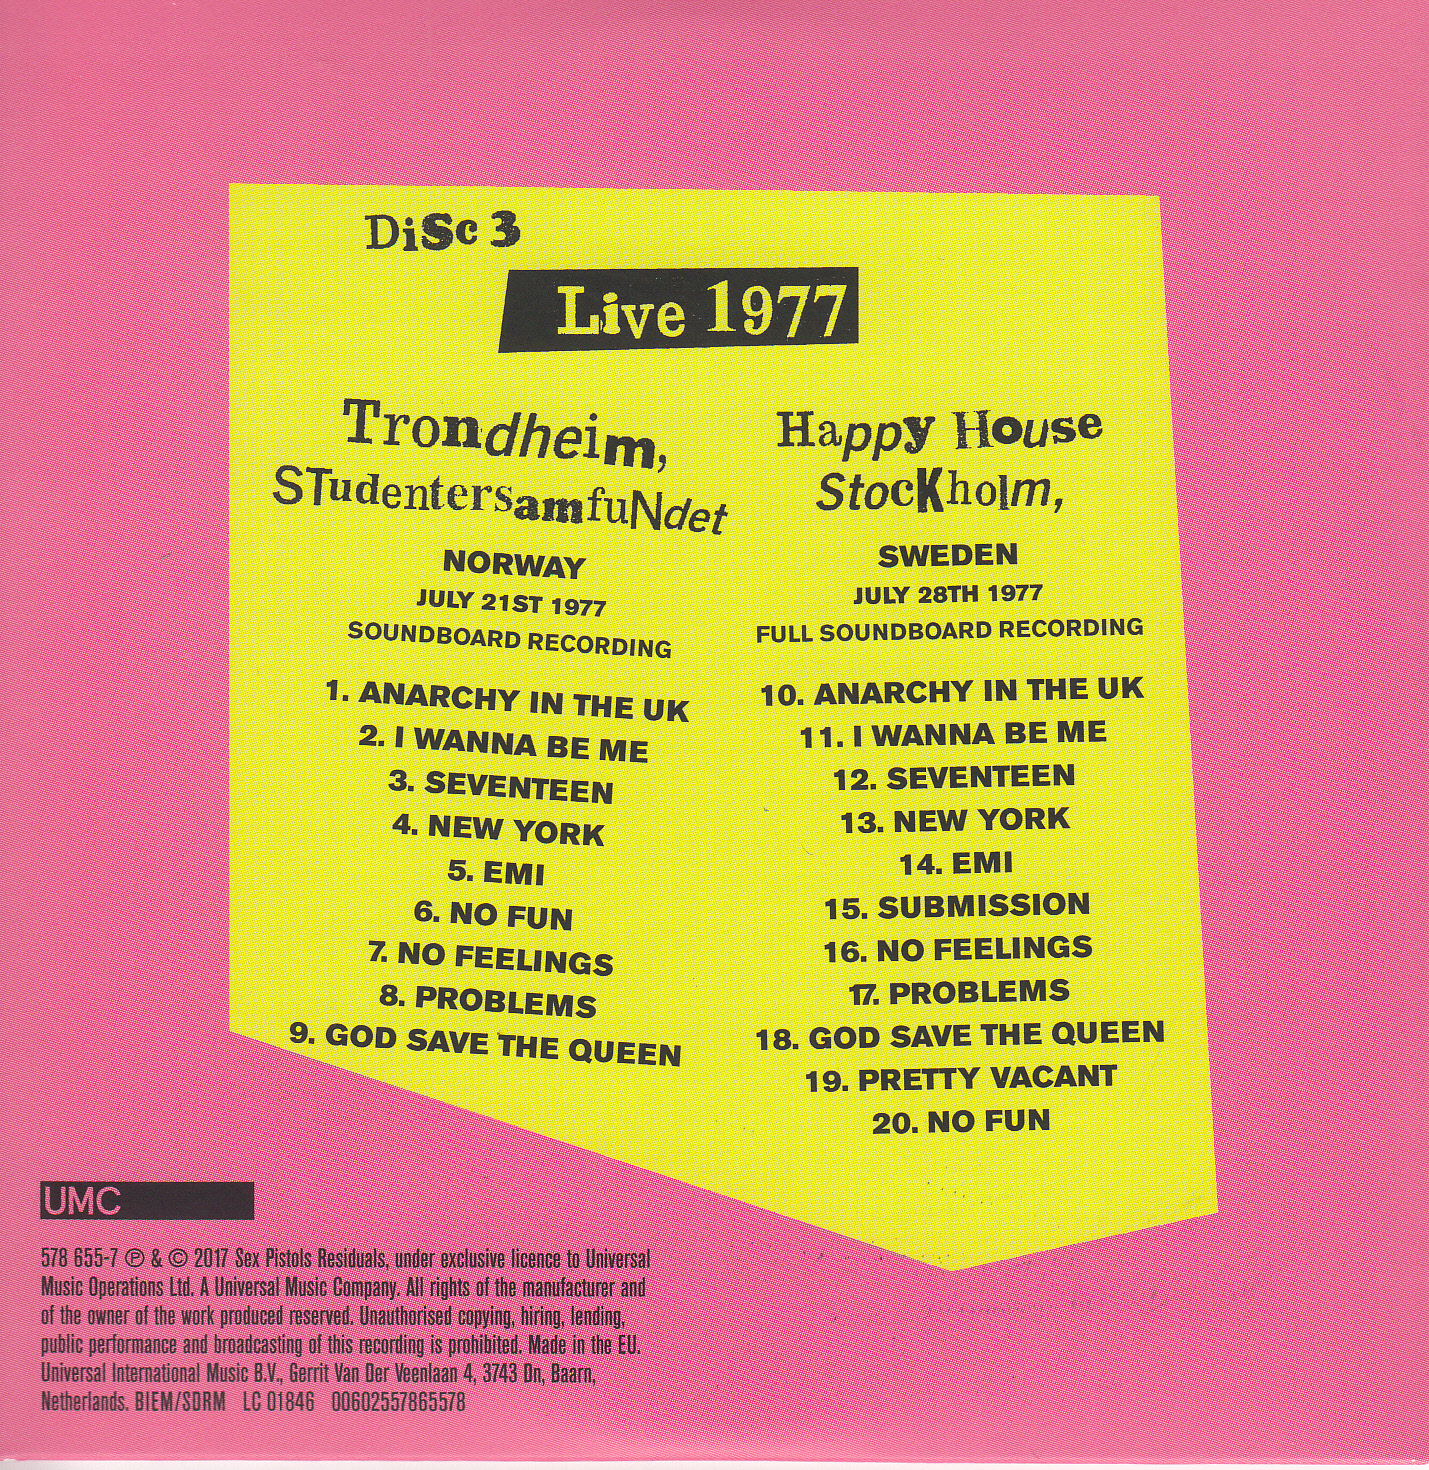 Disc 3 back cover